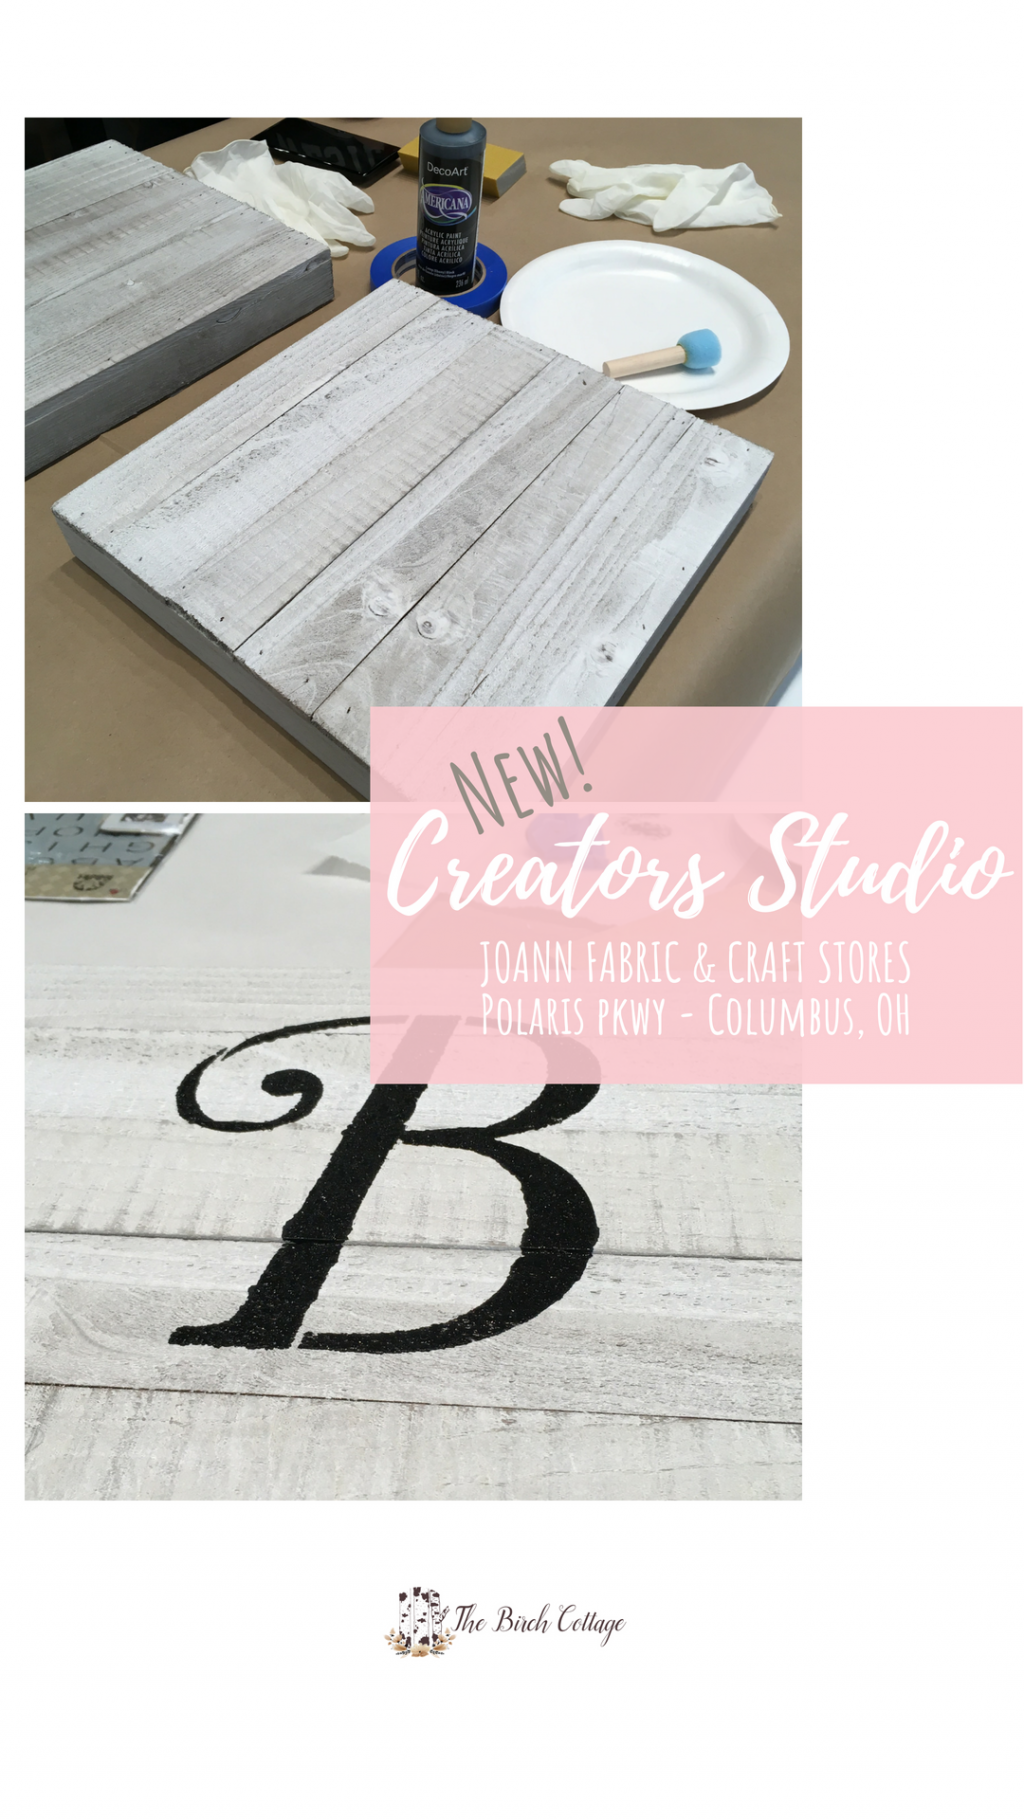 Sign Workshop at JOANN Fabric and Crafts